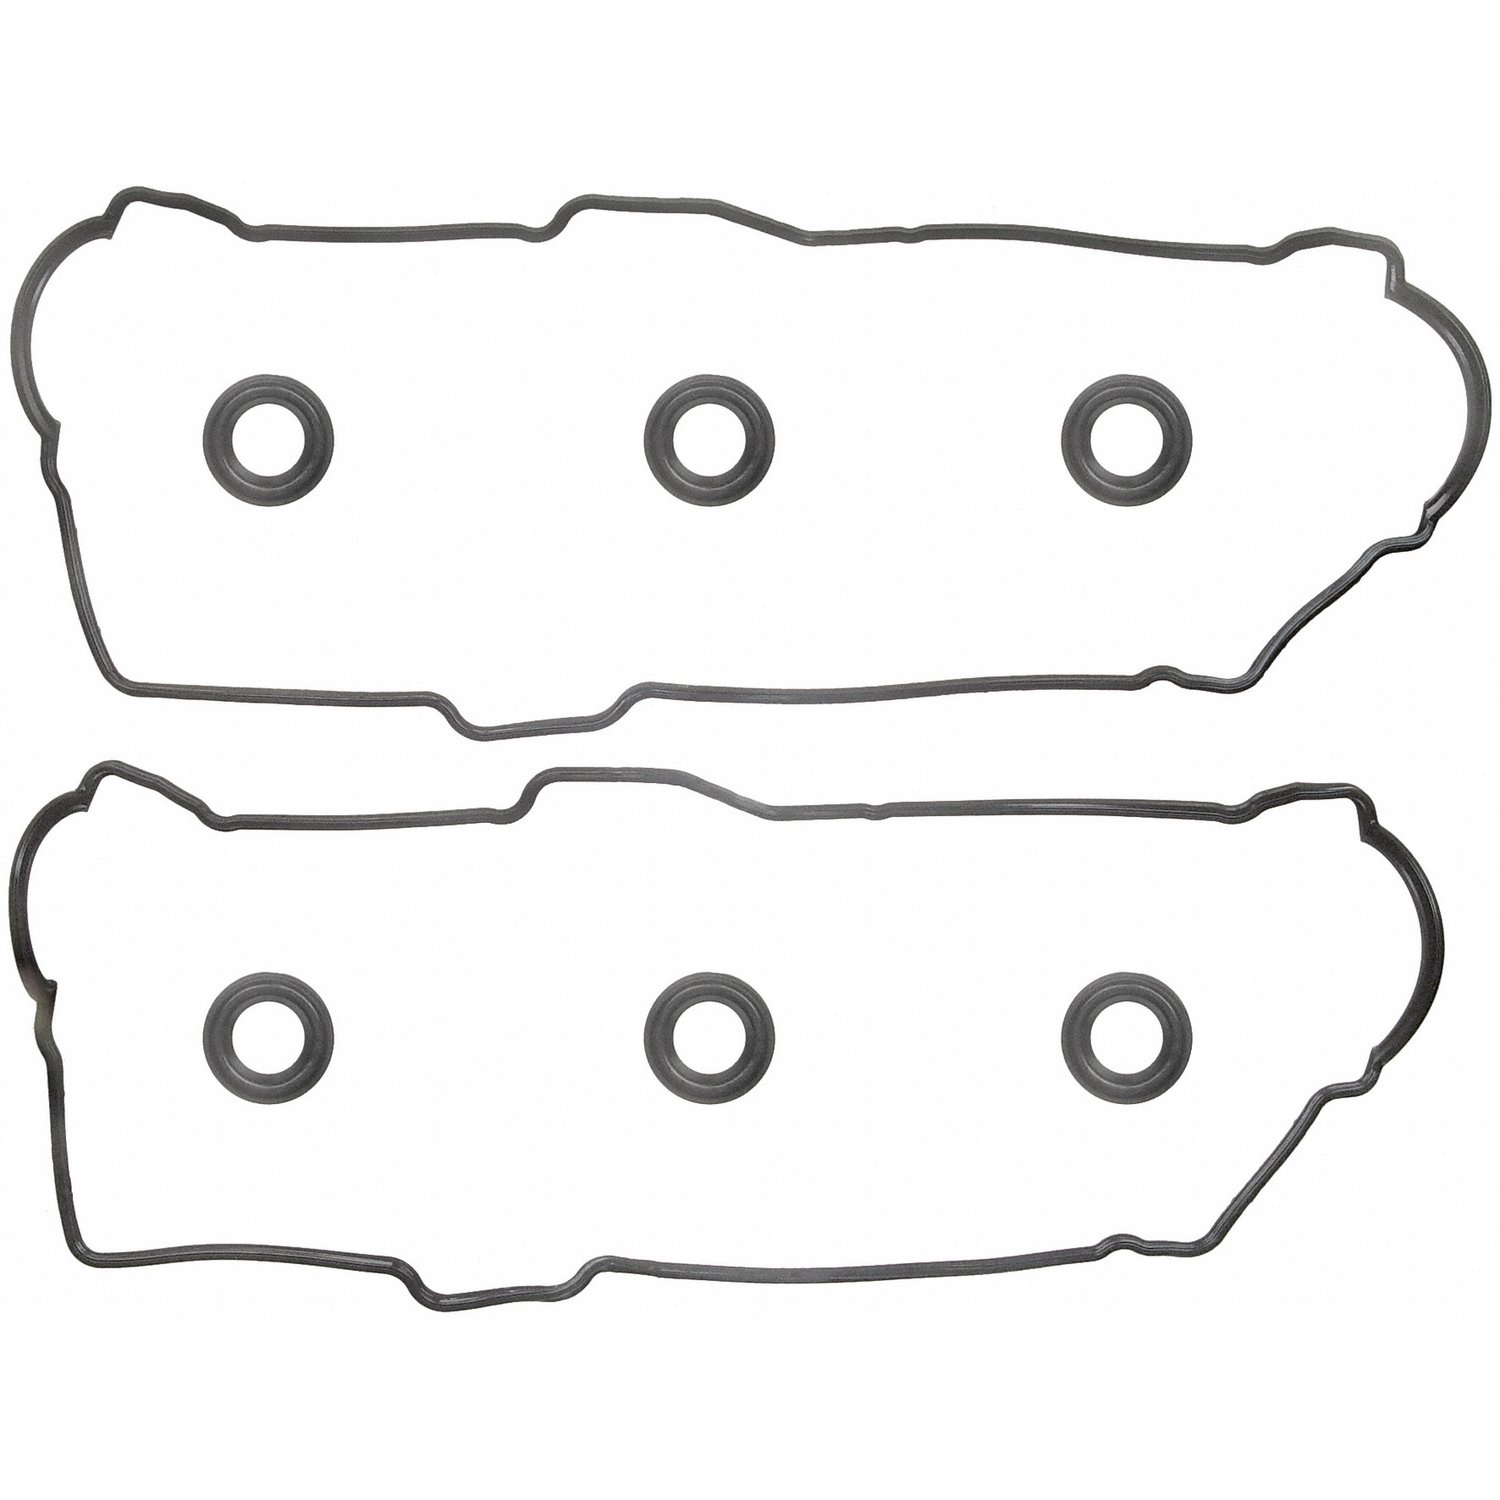 Felpro Engine Valve Cover Gasket Set Vs R